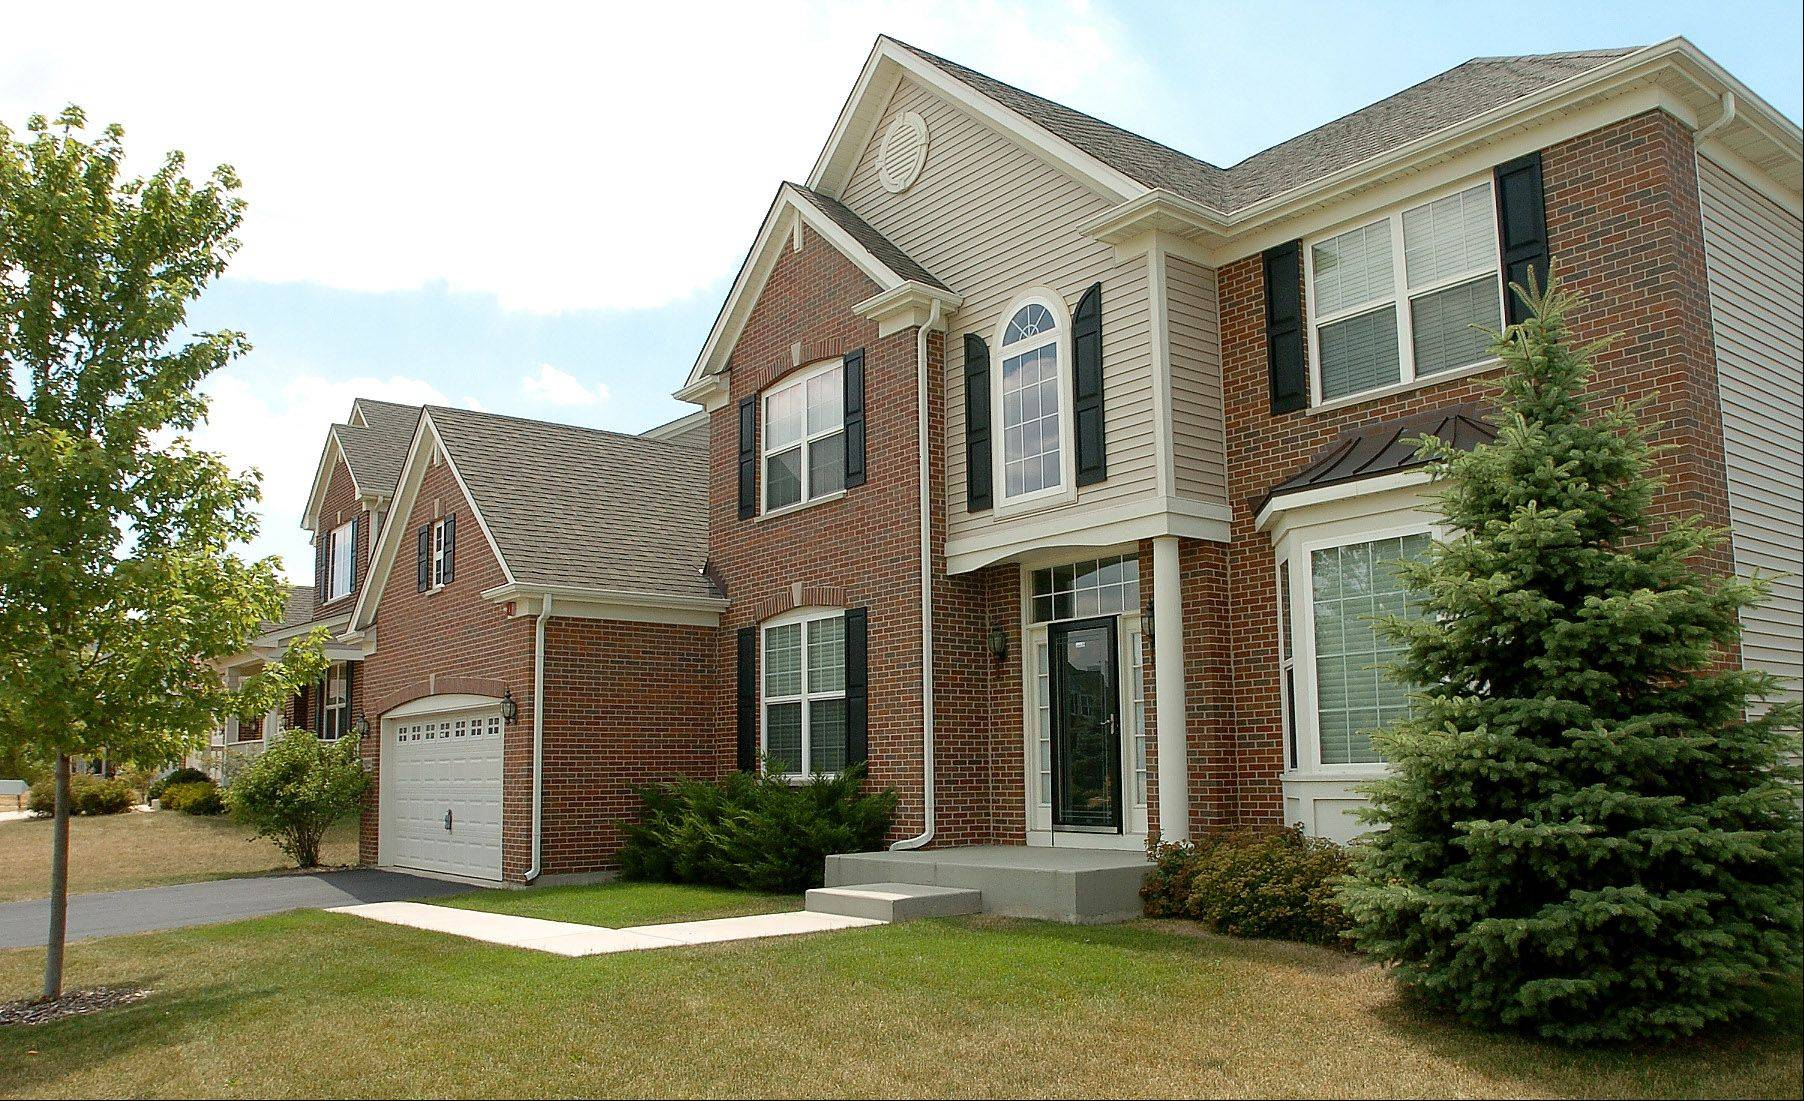 Beacon Pointe subdivision is a family-oriented neighborhood in Hoffman Estates. This home is on Bonita Lane.